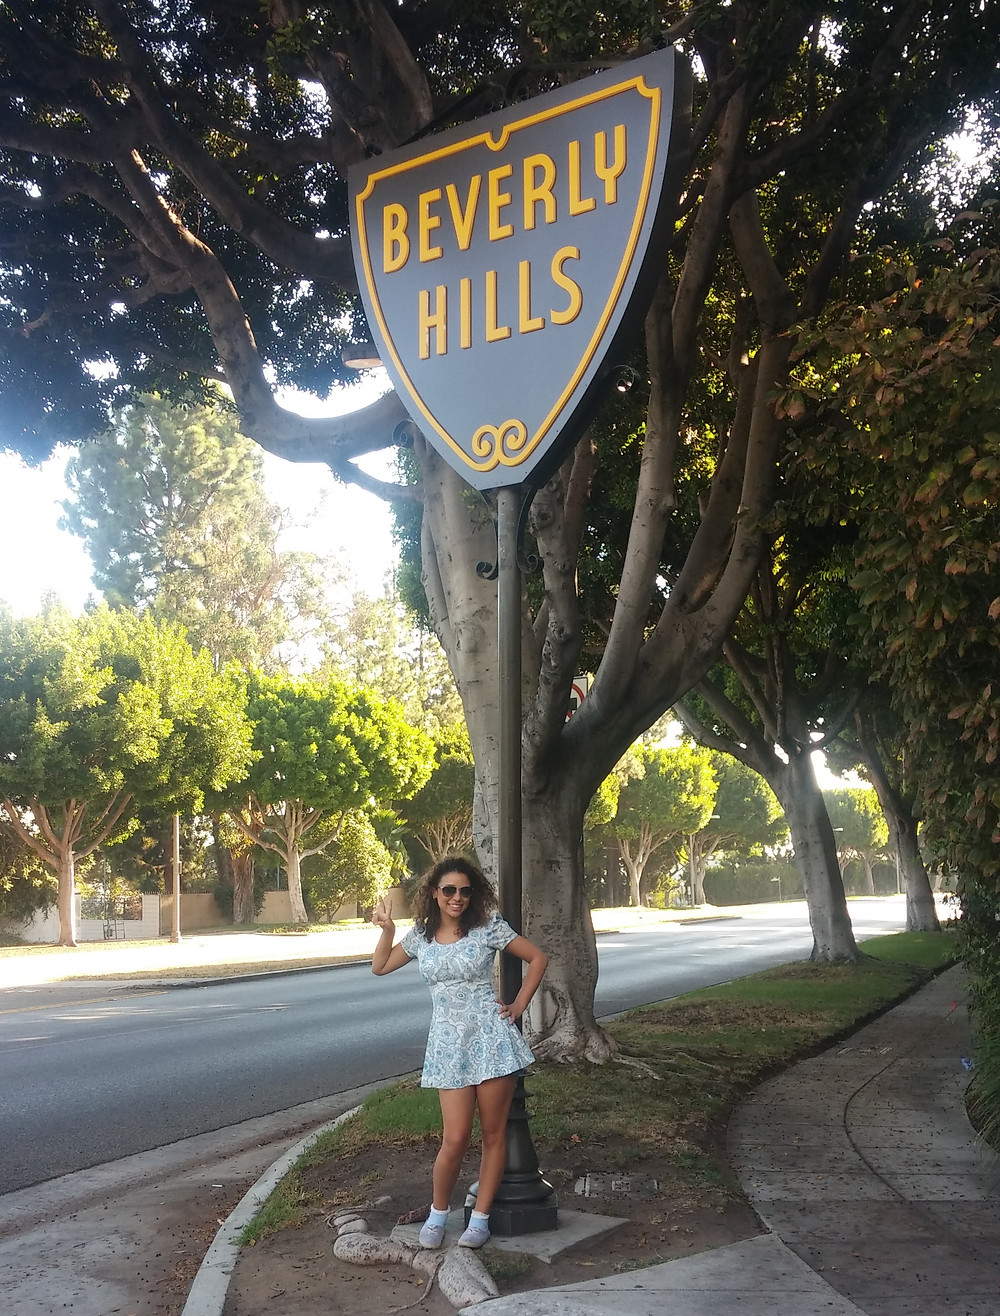 Standing in front of the Beverly Hills sign in Los Angeles